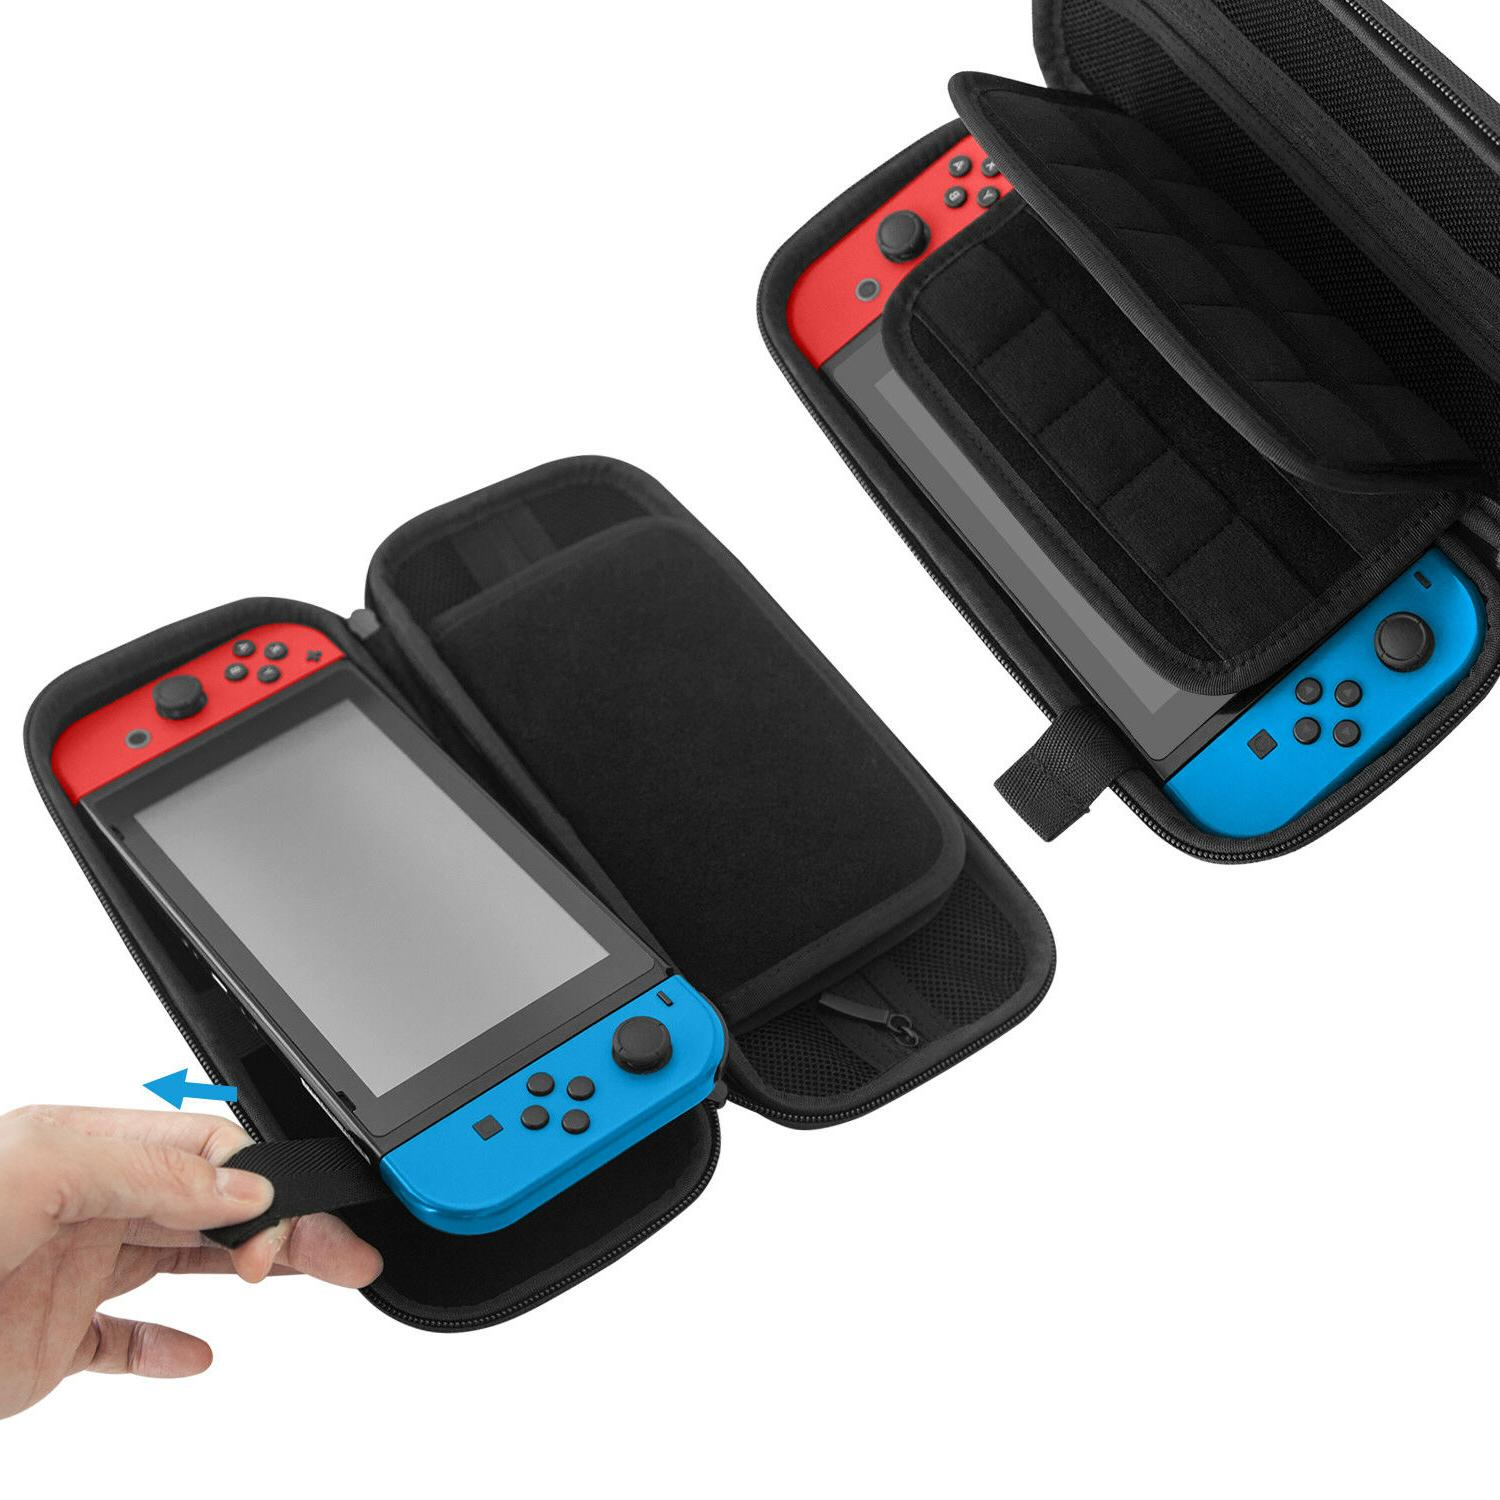 JETech Carrying Case for Game Cartridge Holders